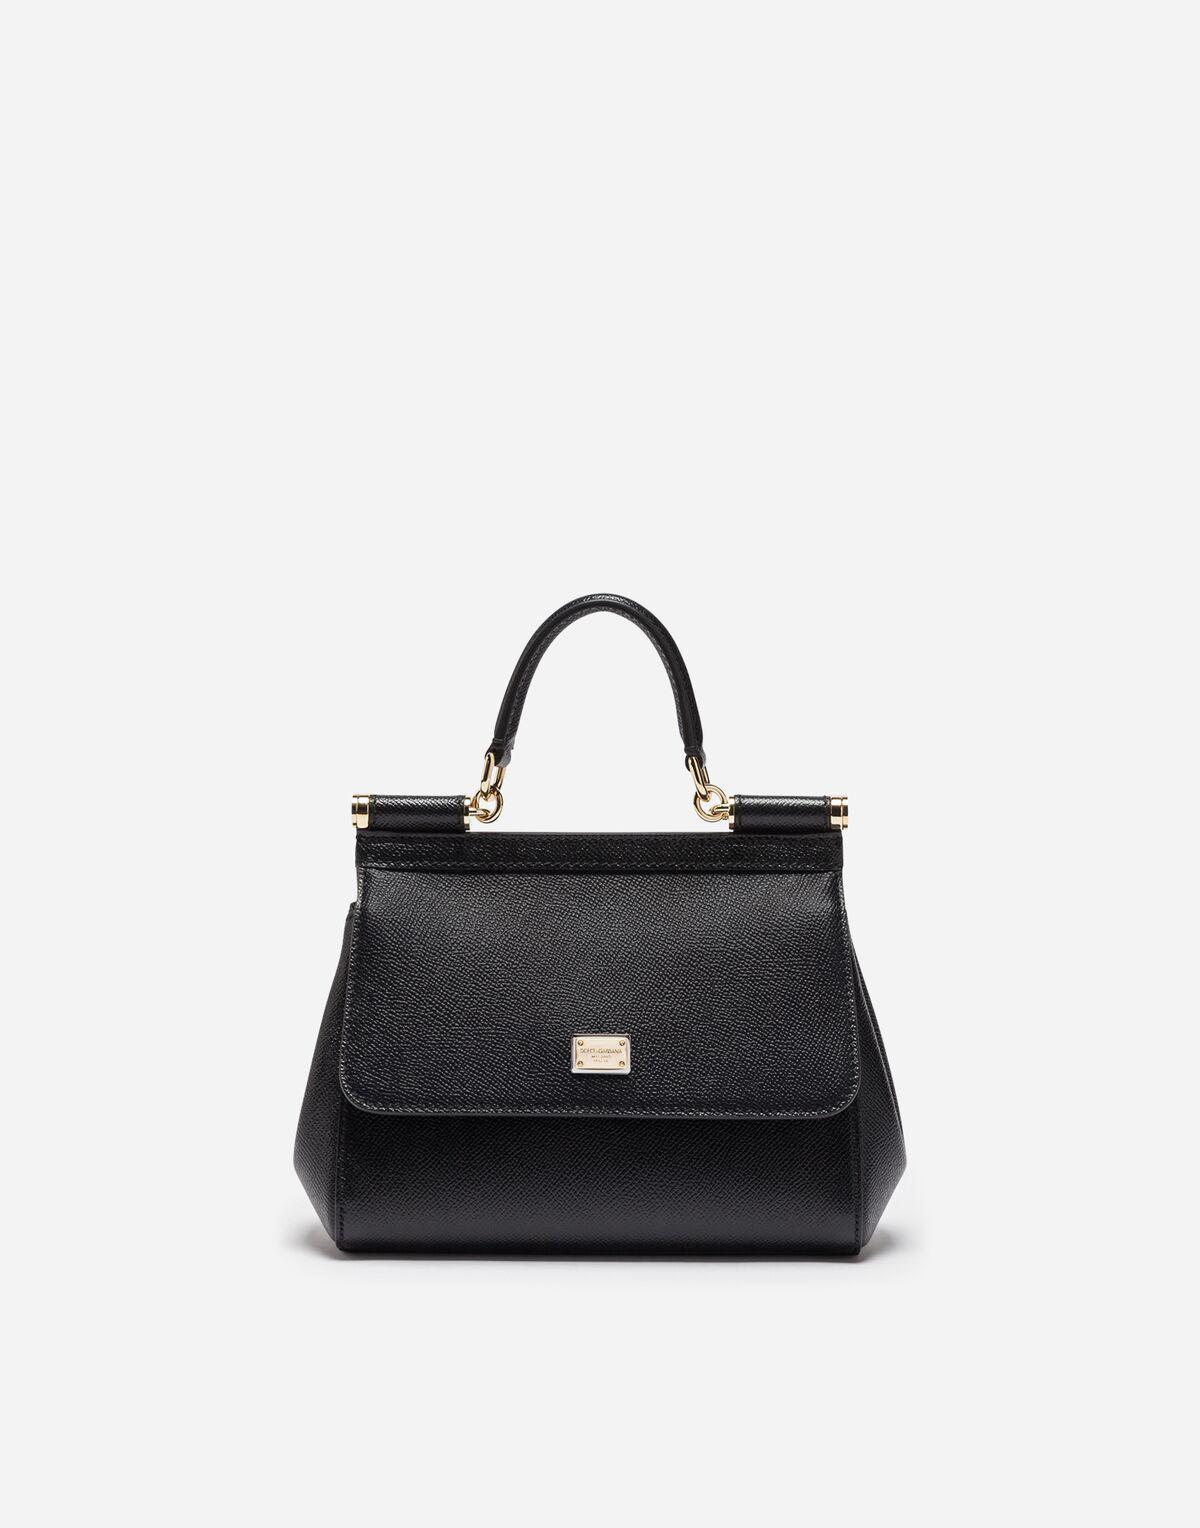 374e8651f4 Lyst - Dolce   Gabbana Small Dauphine Leather Sicily Bag in Black